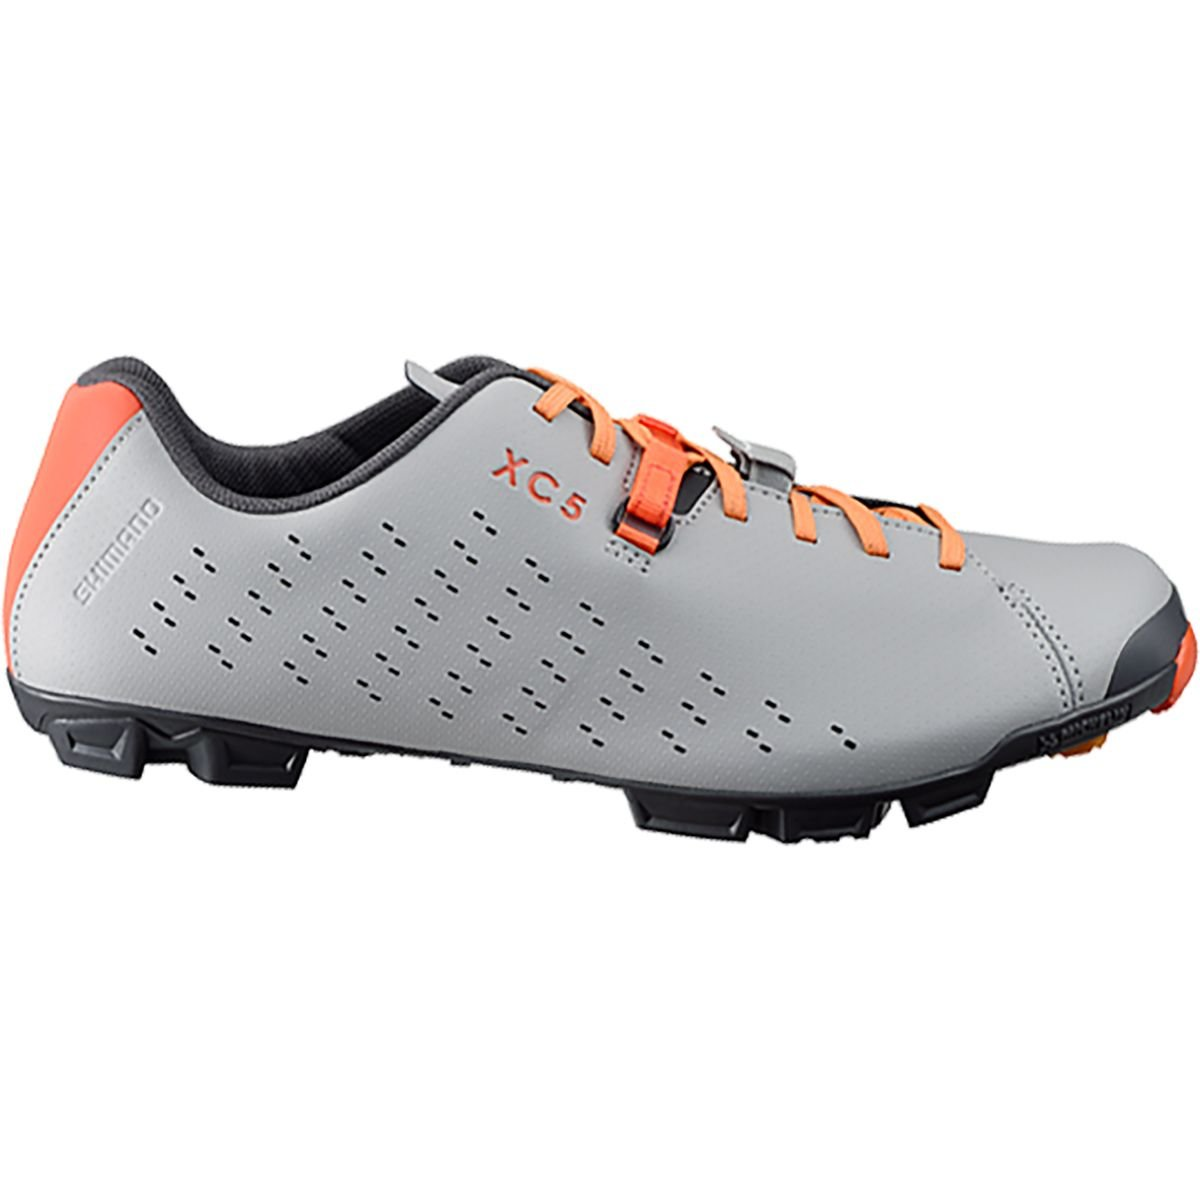 SHIMANO SH-XC5 Mountain Bike Shoe - Men's Grey/Orange; 40 by SHIMANO